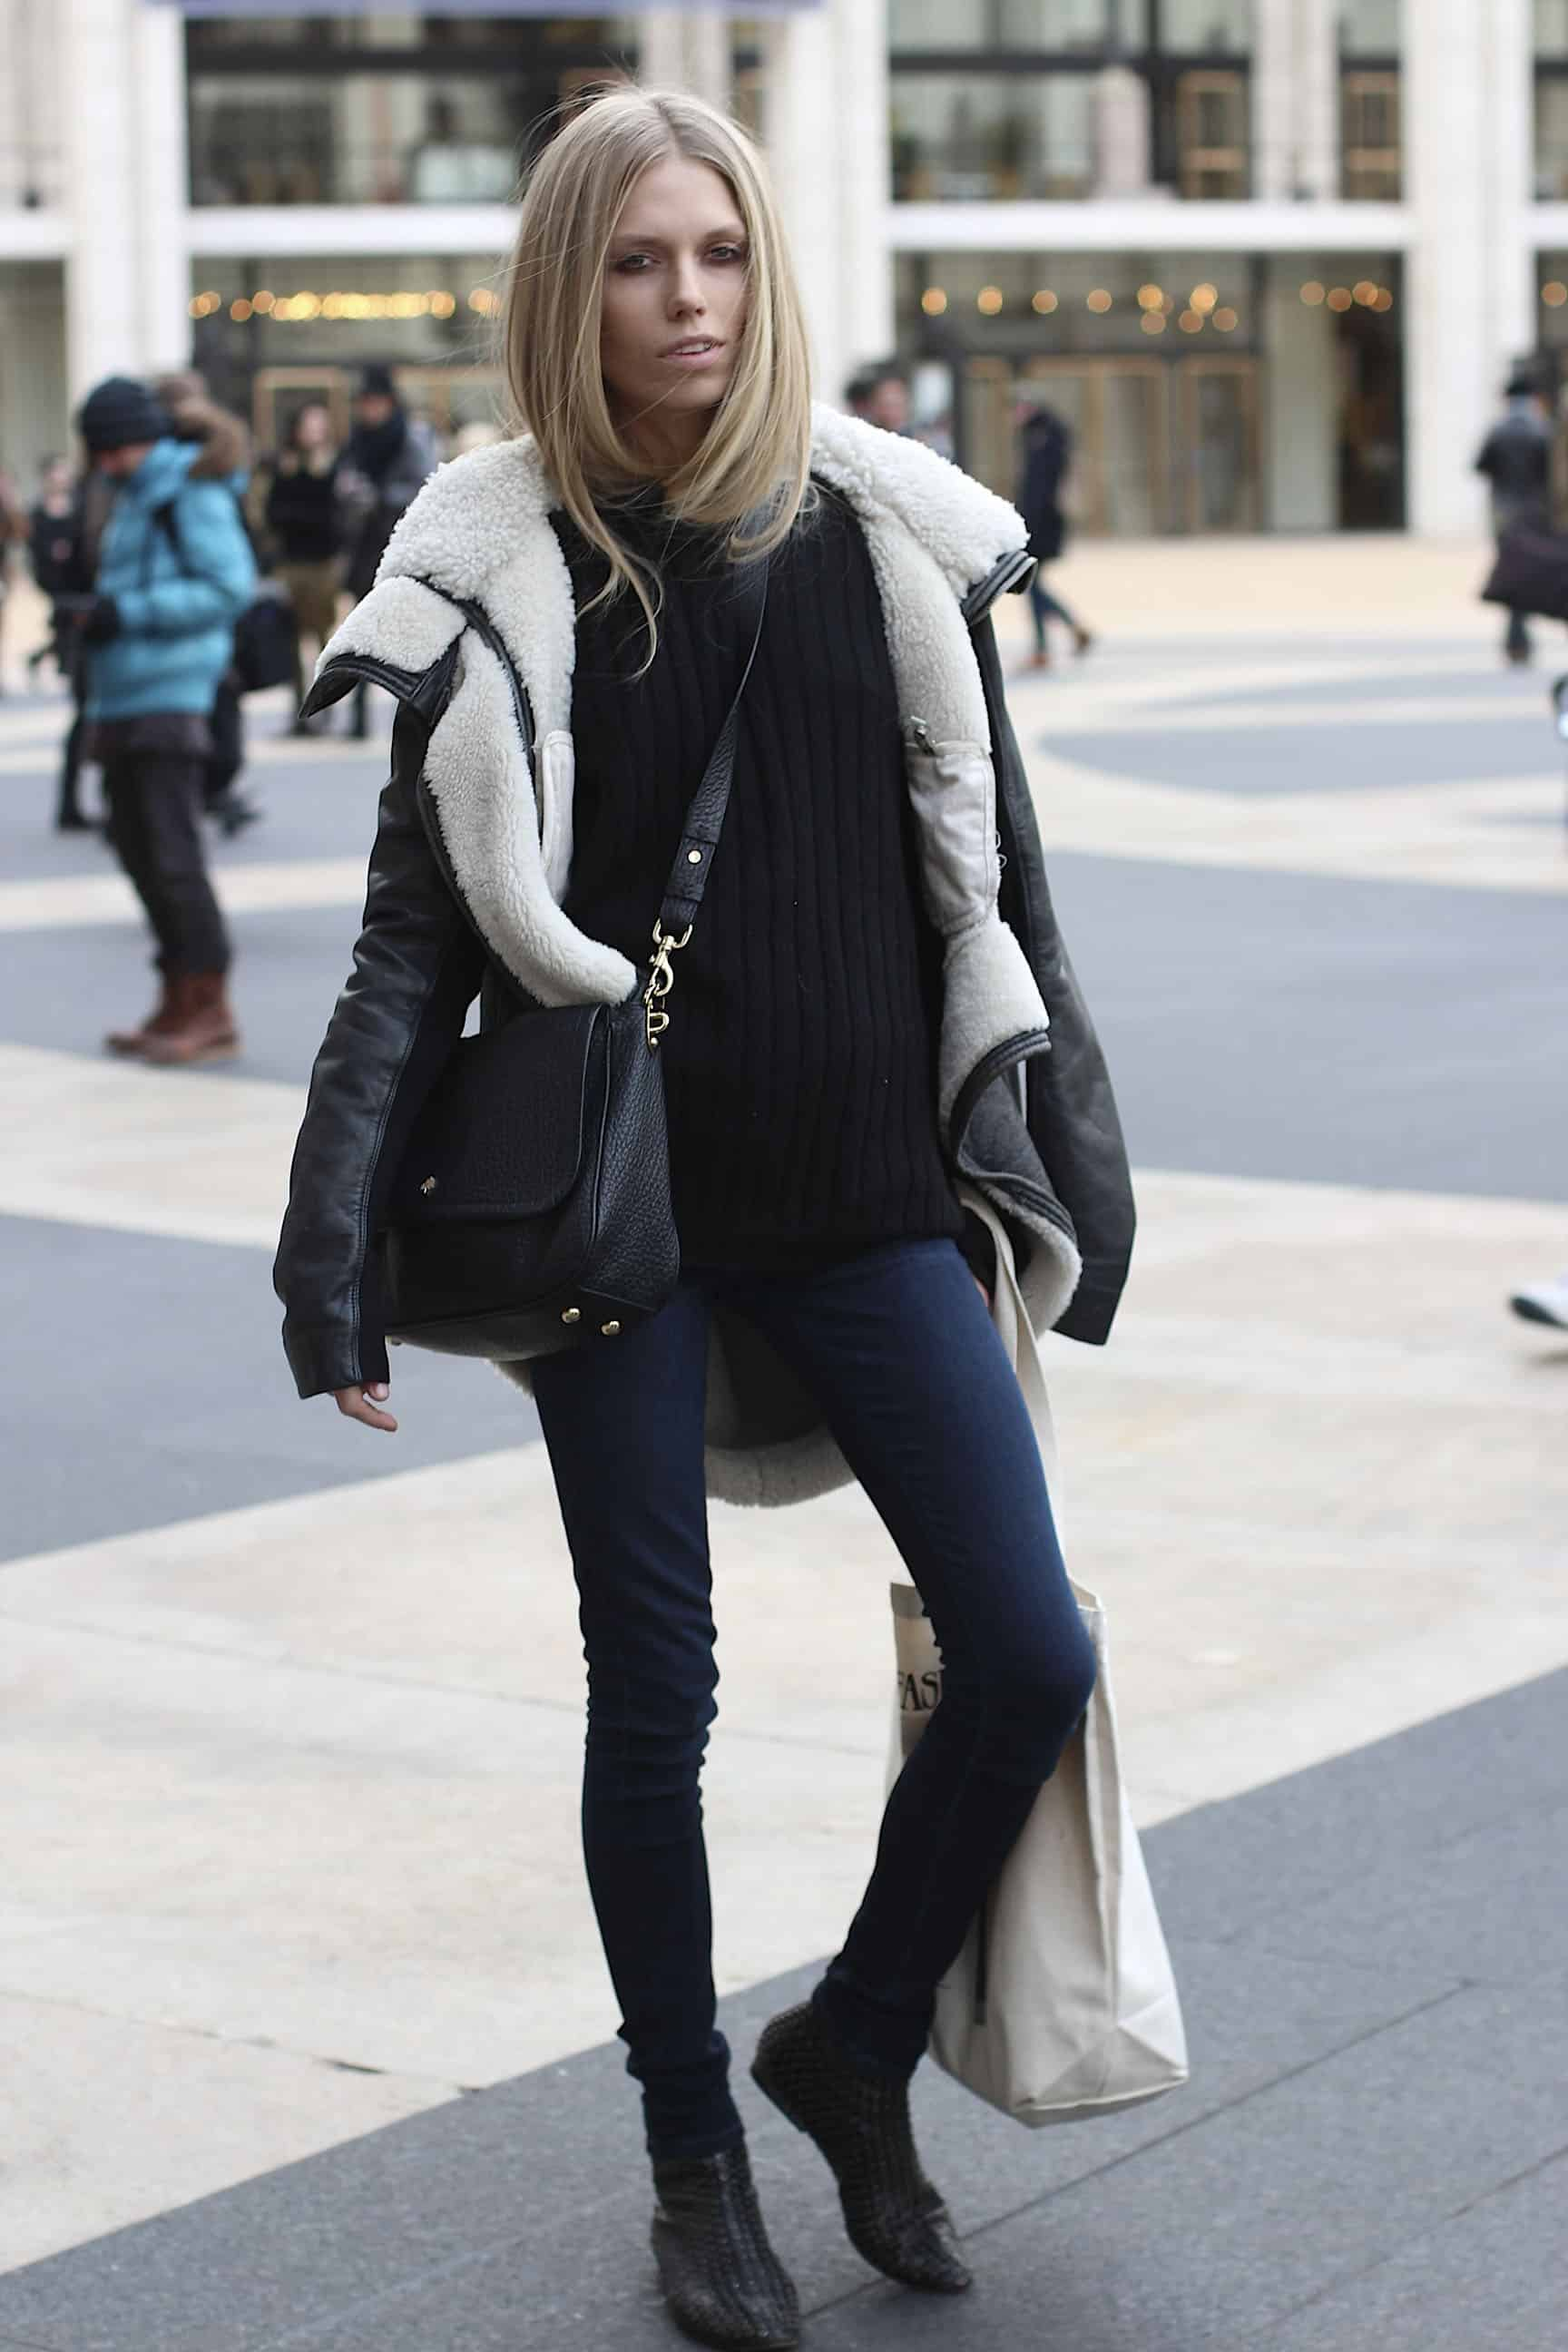 grungy-look-skinny-jeans-street-style – The Fashion Tag Blog